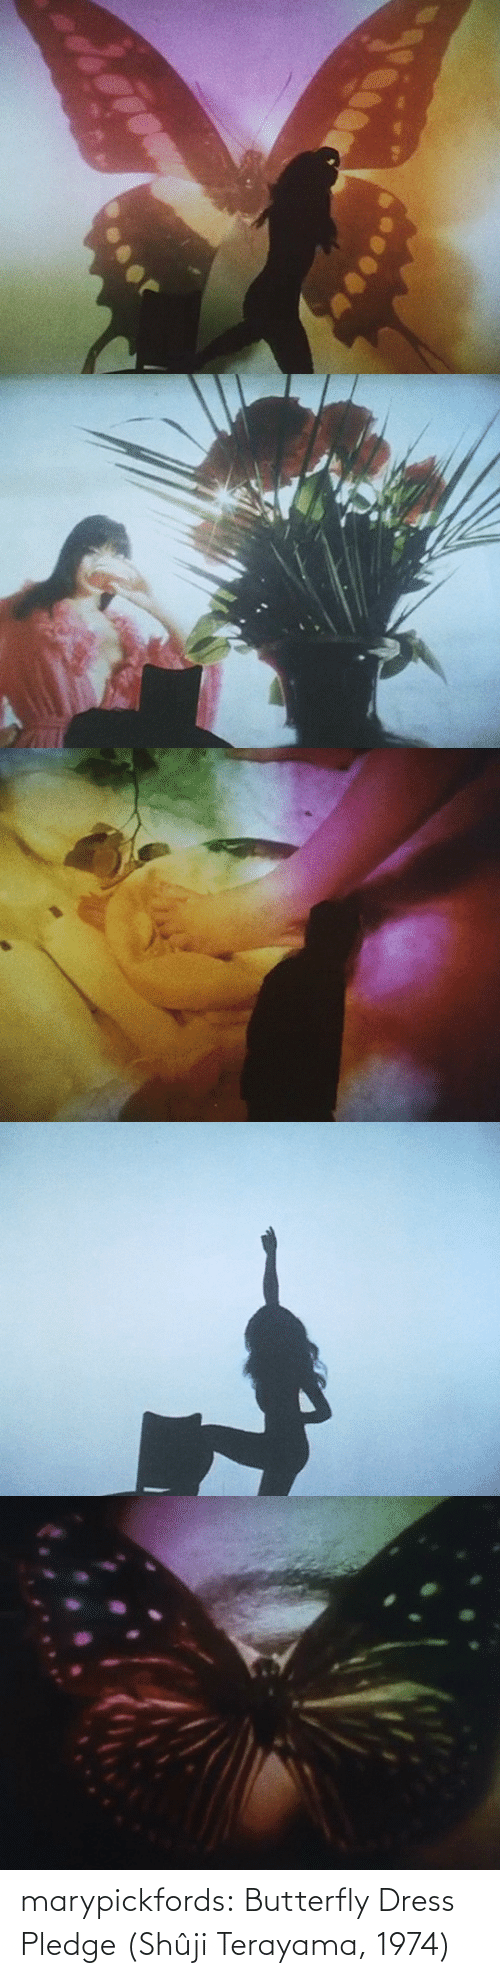 Butterfly: marypickfords: Butterfly Dress Pledge (Shûji Terayama, 1974)